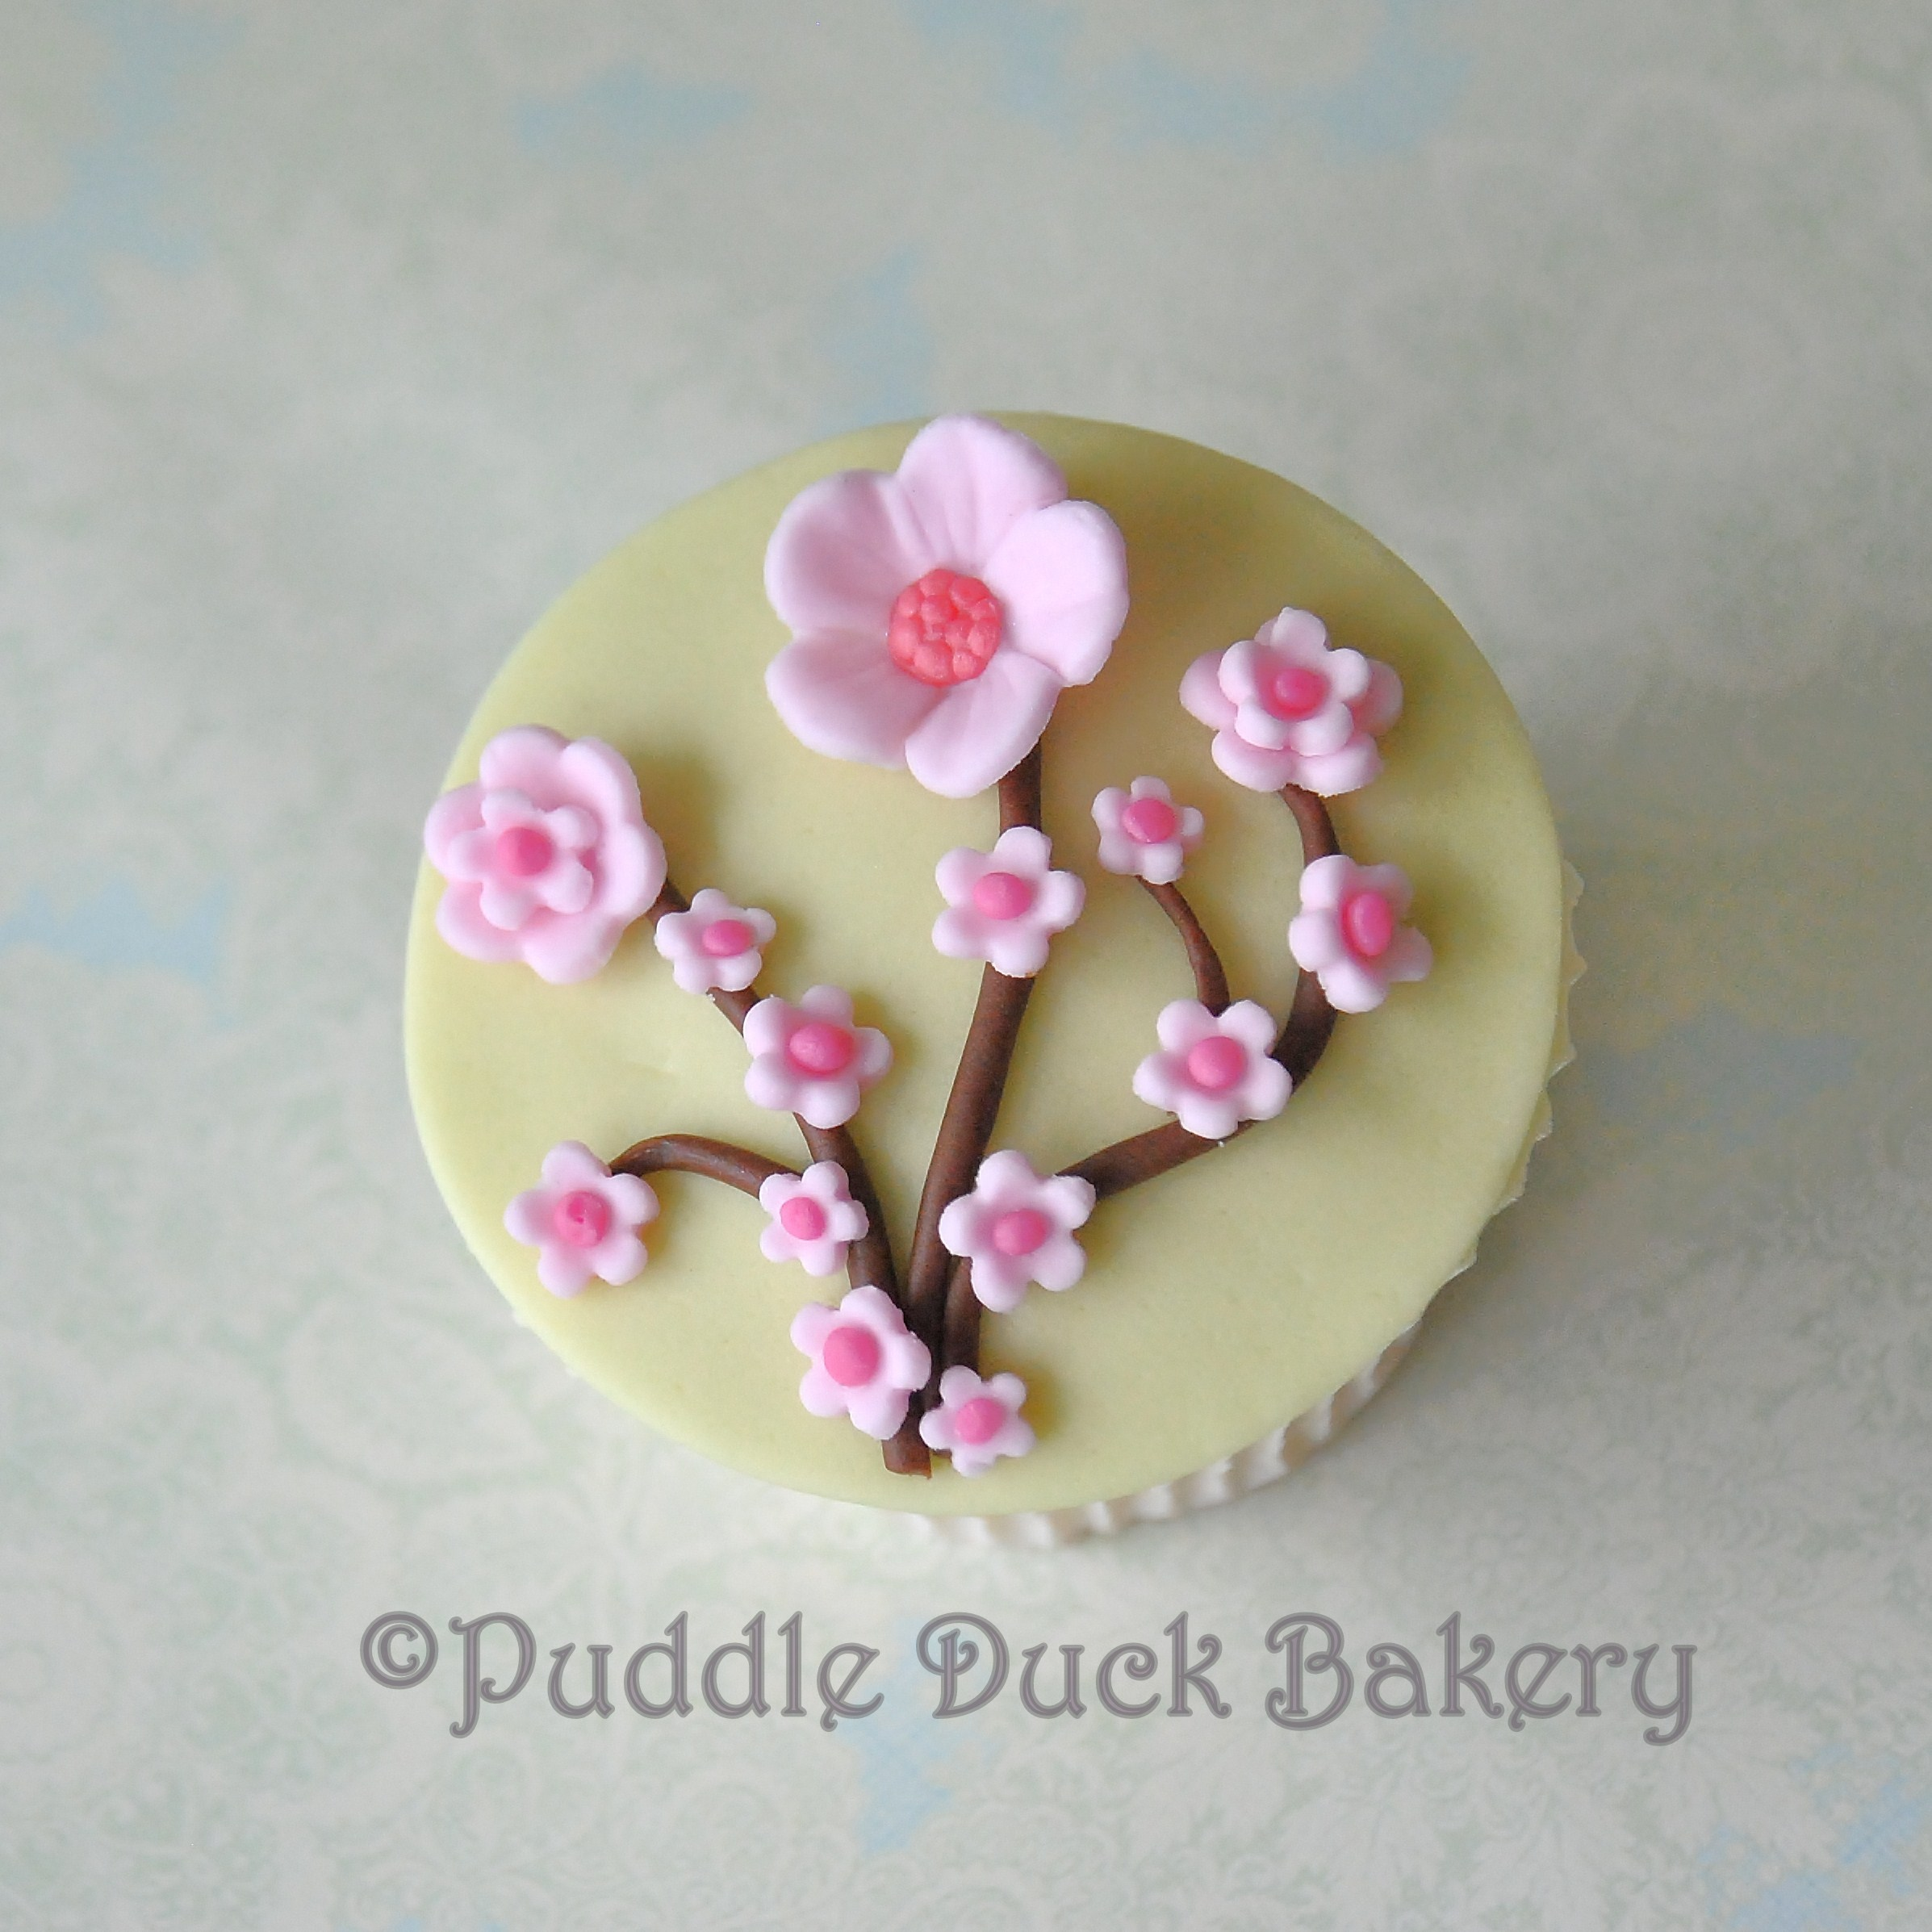 Delicate flowers on a cupcake